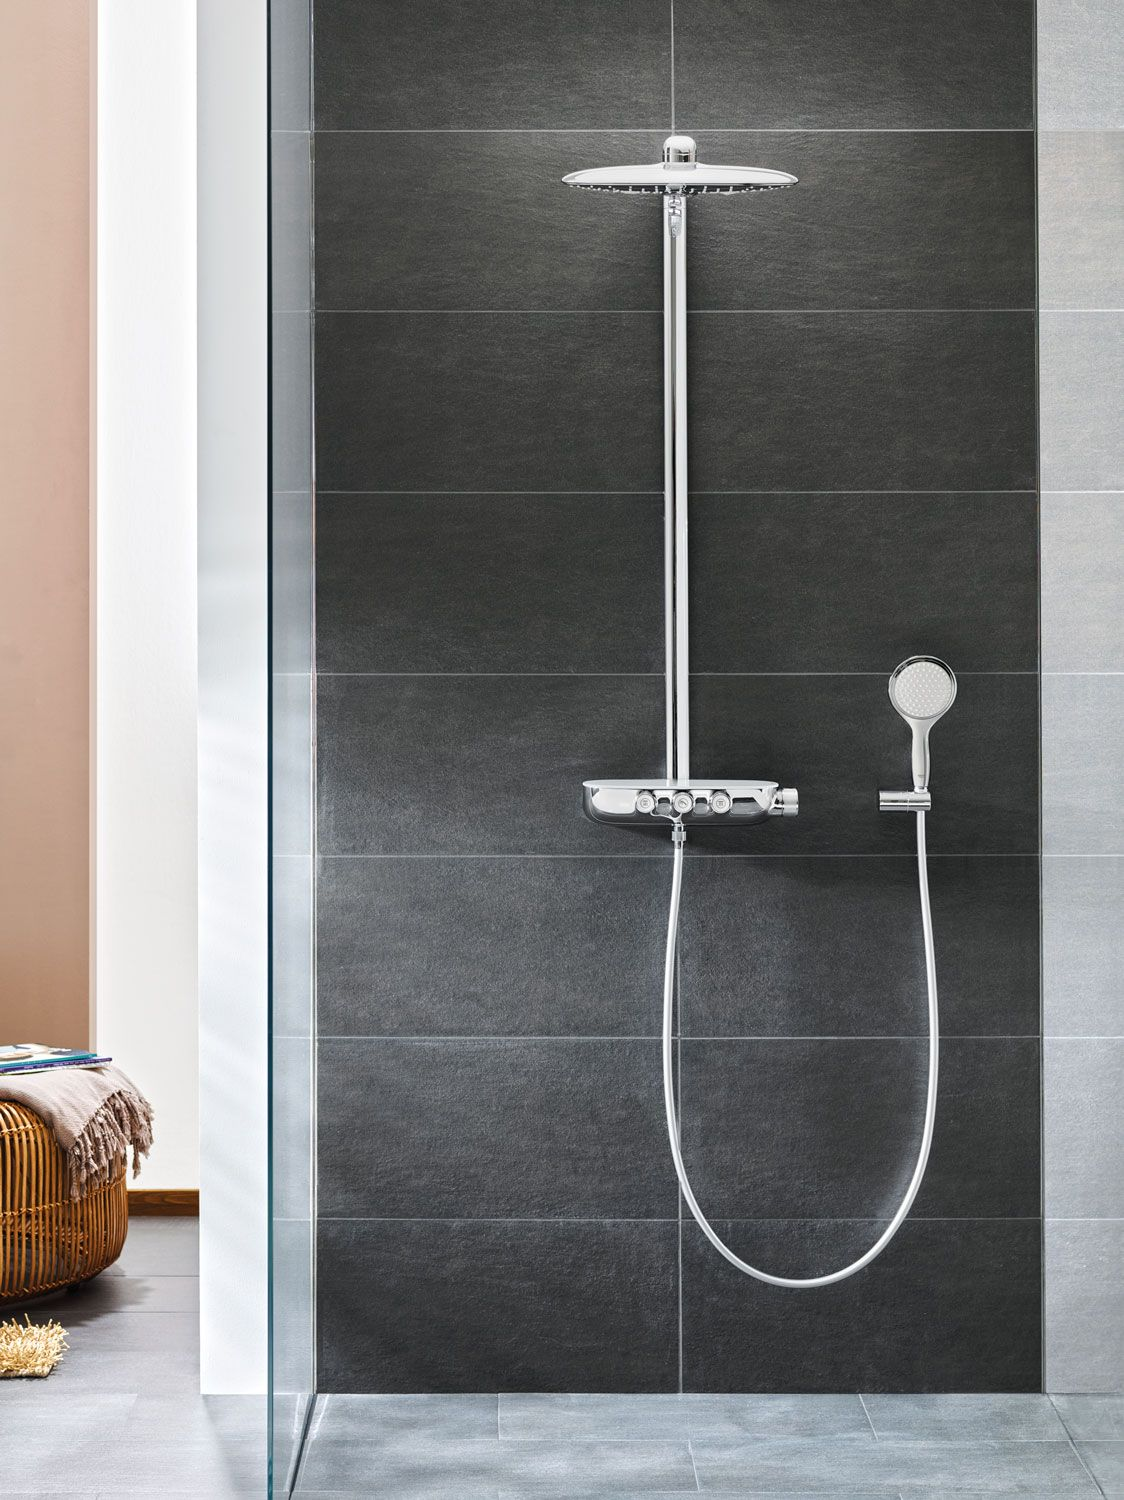 Grohe - SmartControl | House | Pinterest | Wall mount, Ranges and Walls